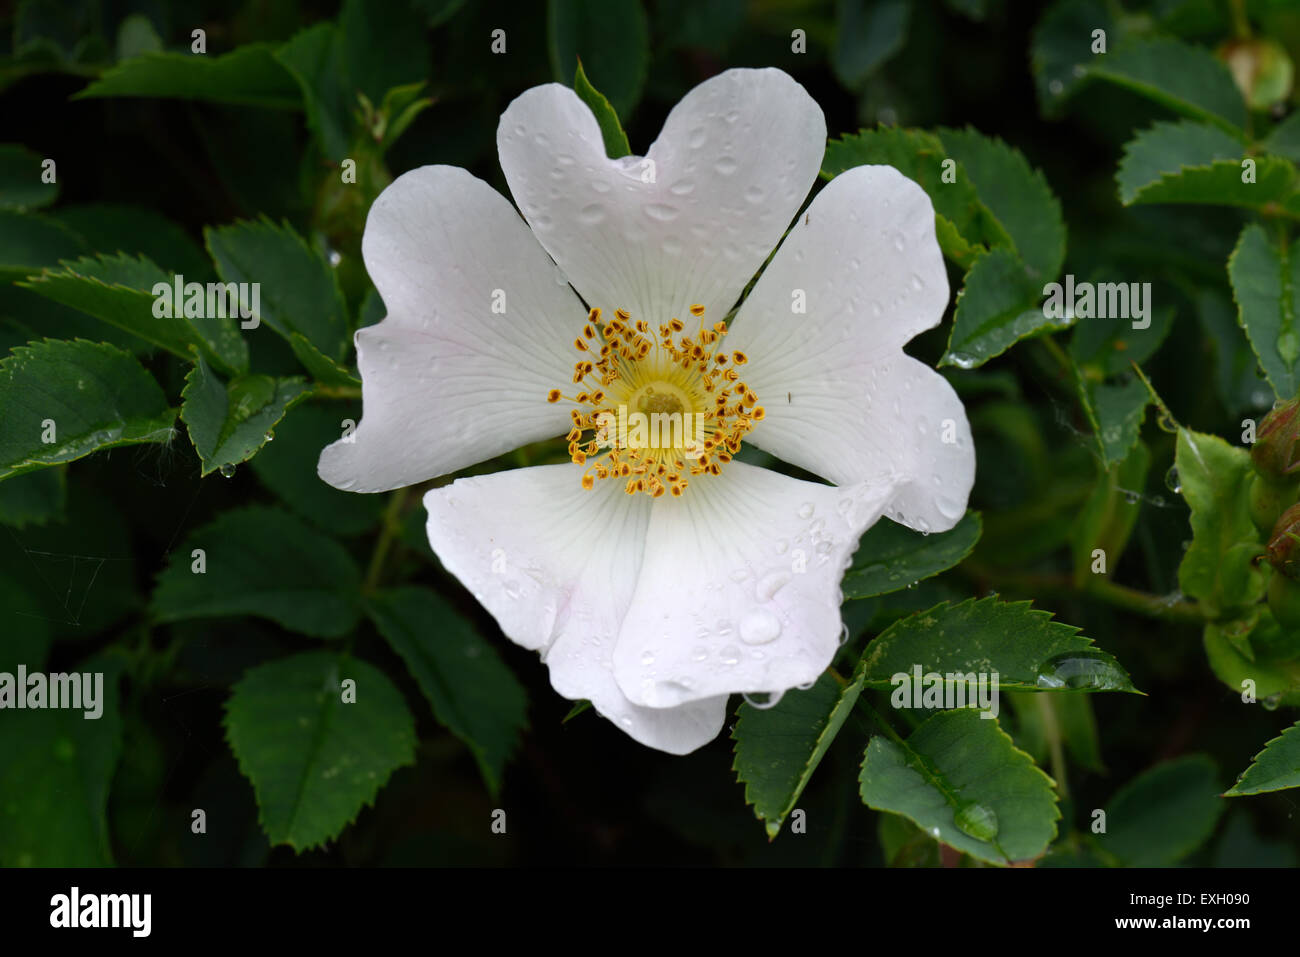 Dog rose rosa canina wild climbing plant with pink and white stock dog rose rosa canina wild climbing plant with pink and white flowers with raindrops after the rain in summer berkshire june mightylinksfo